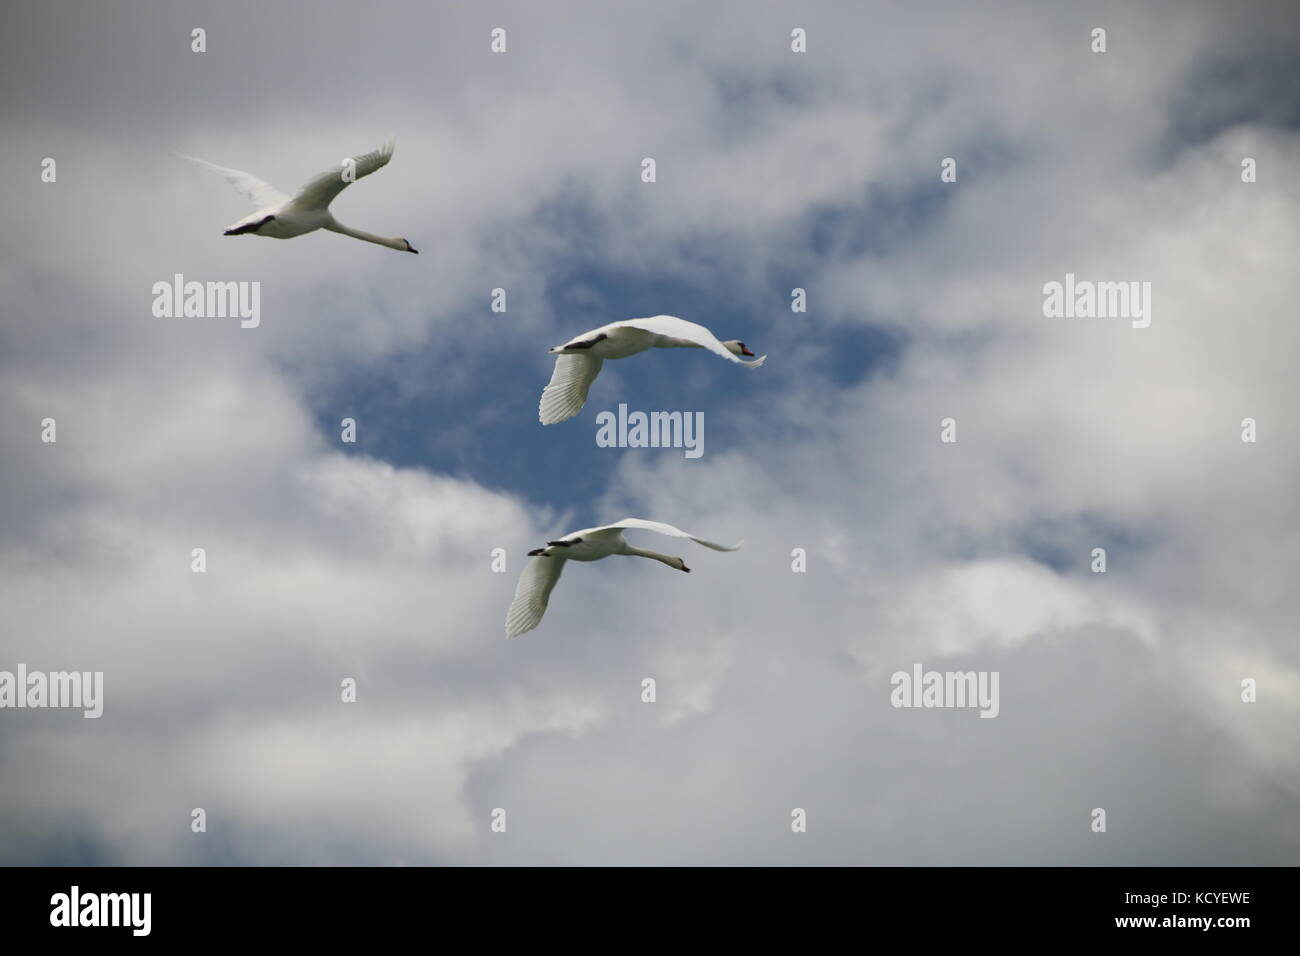 Three swans flying along the coast of the Baltic Sea. - Stock Image